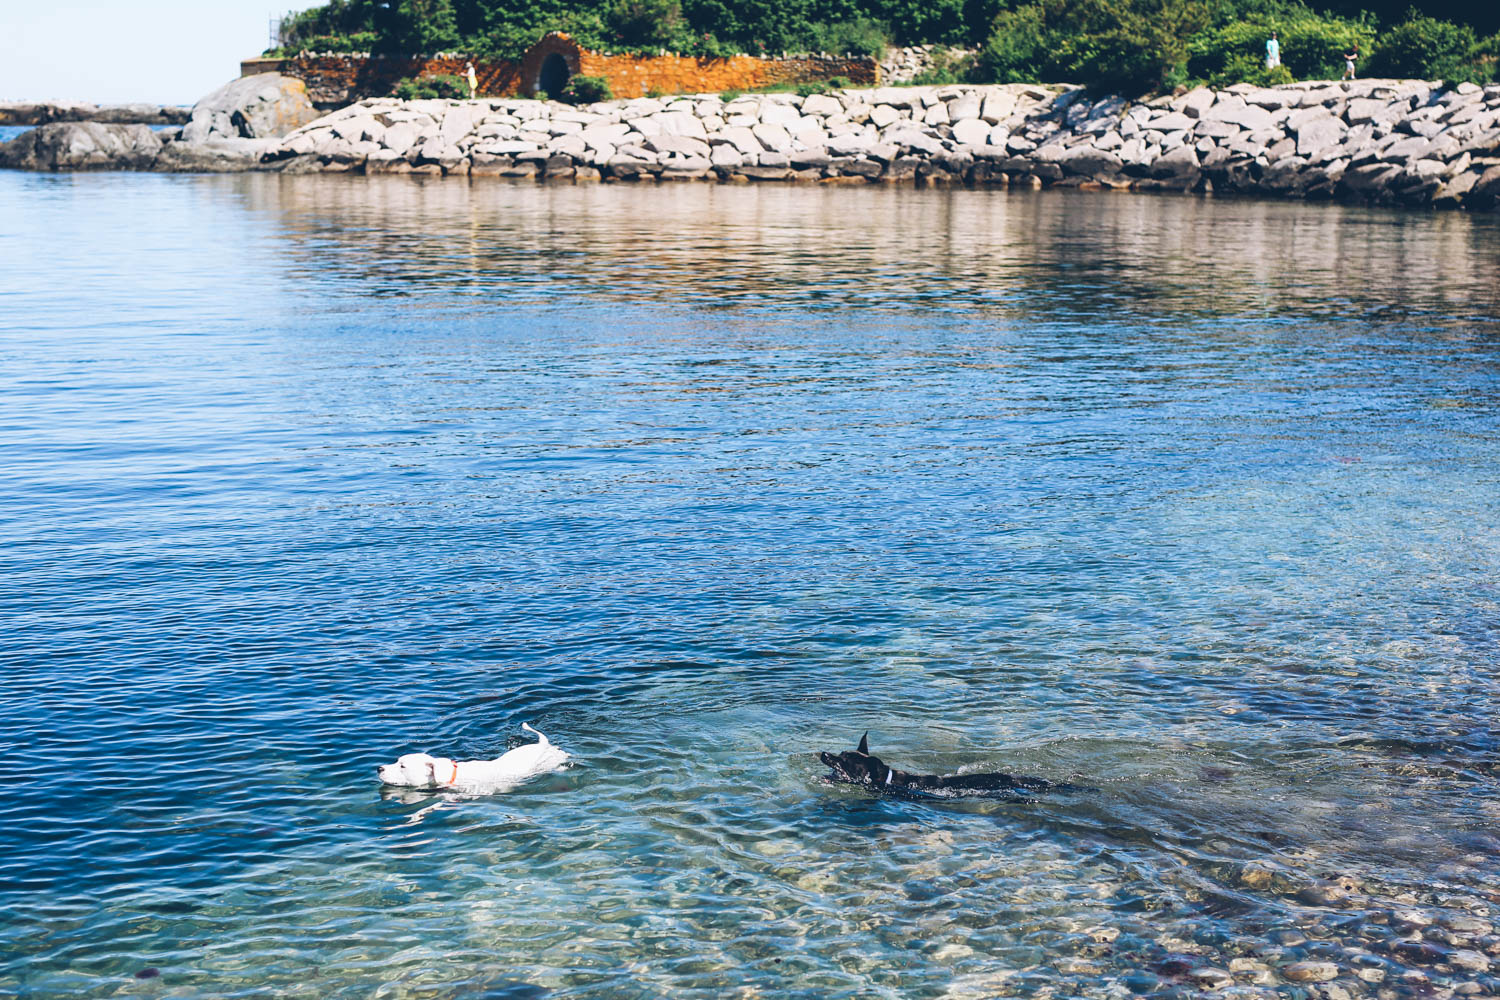 Dogs swimming at the Cliff Walk in Newport, RI